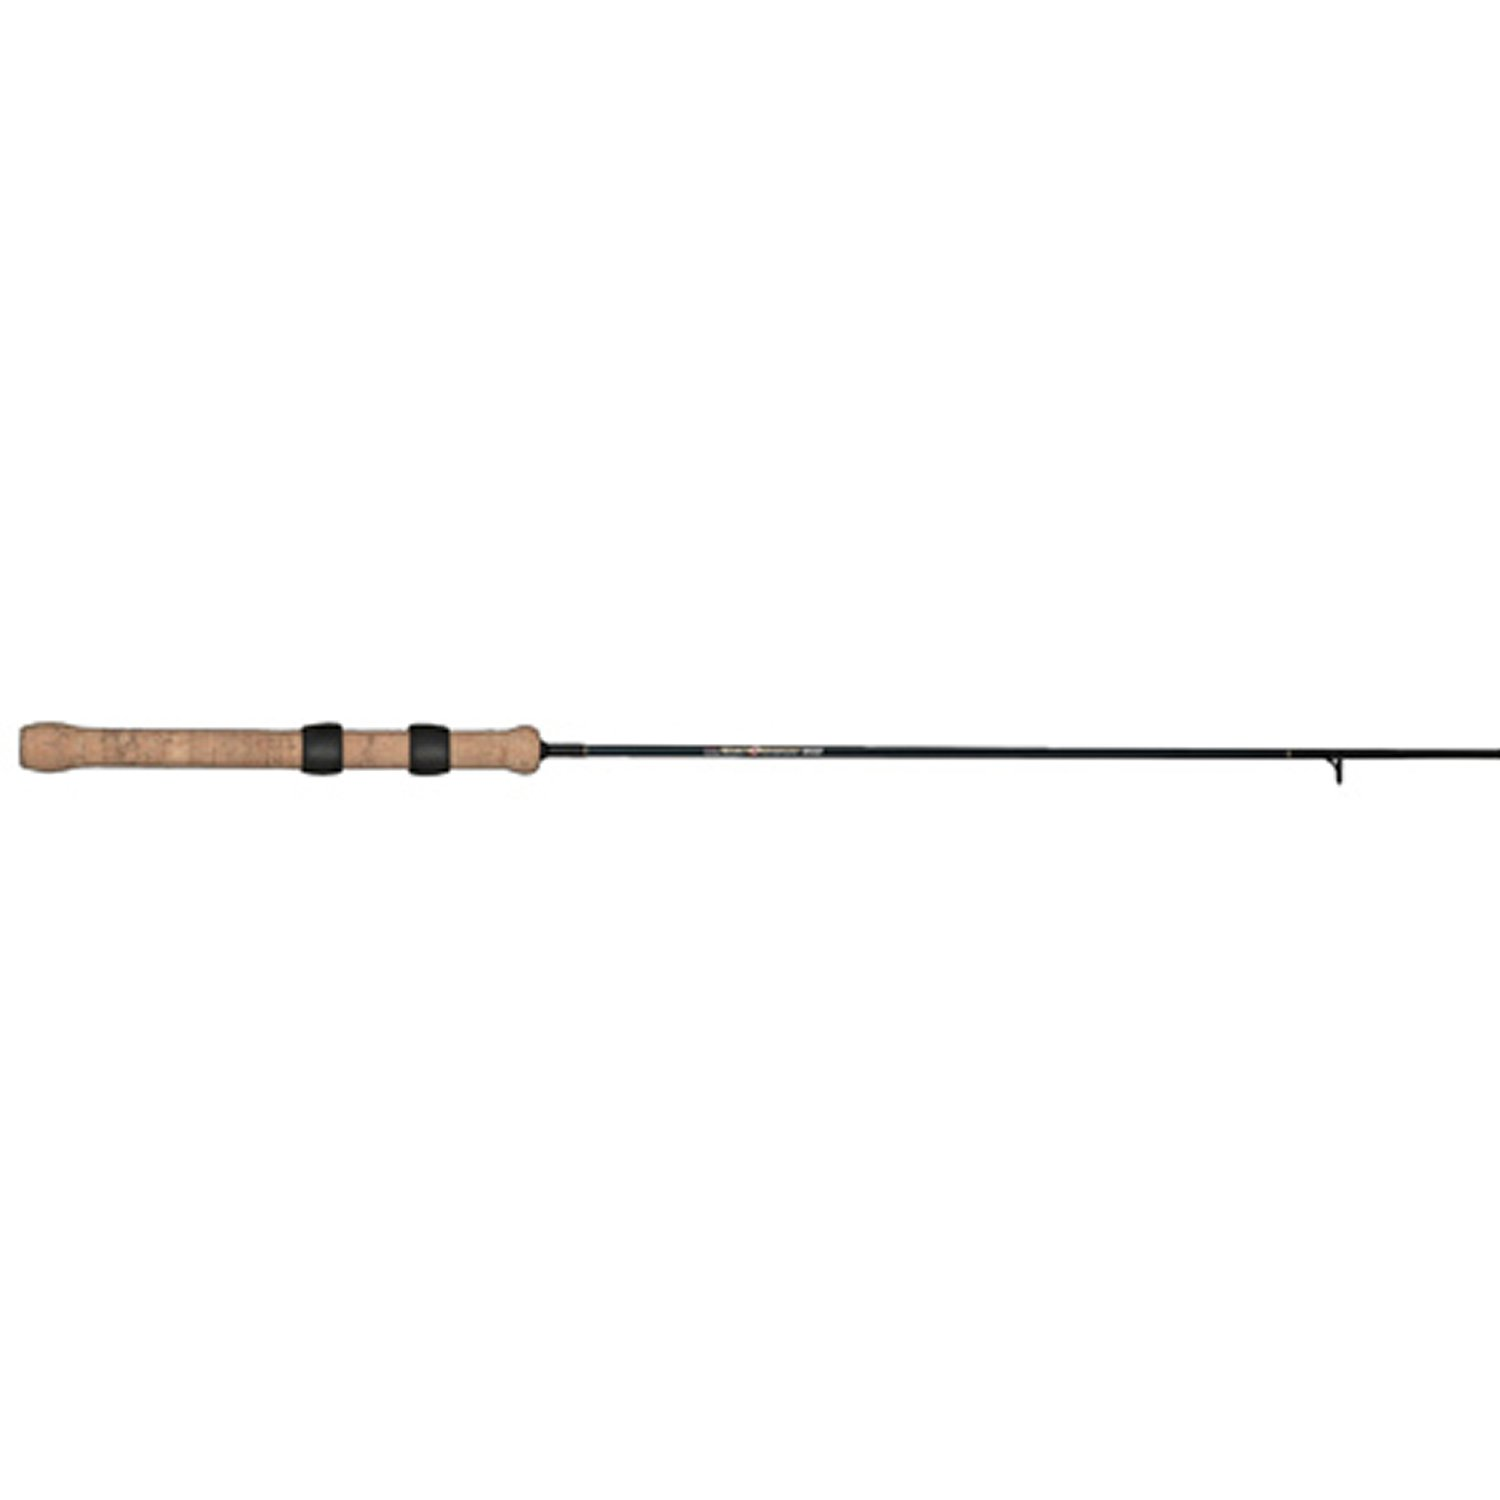 B n M 5-Feet 1 Piece Sharp Shooter Rod